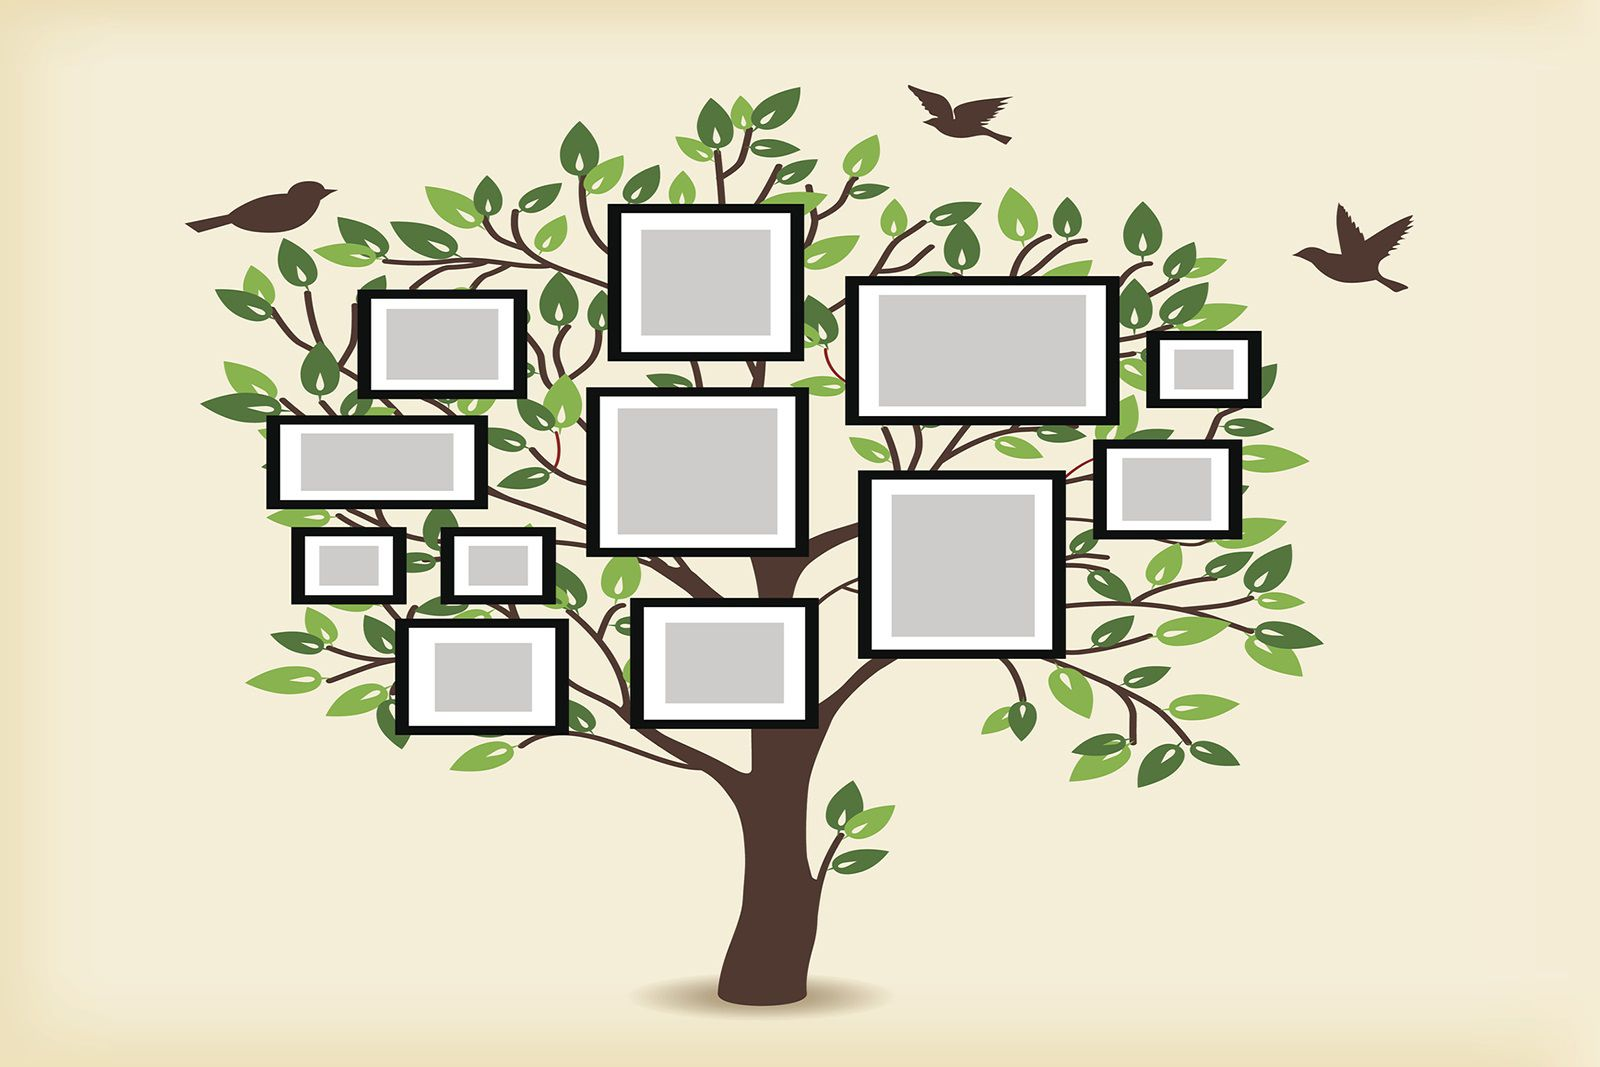 006 Remarkable Family Tree For Baby Book Template Sample  PrintableFull